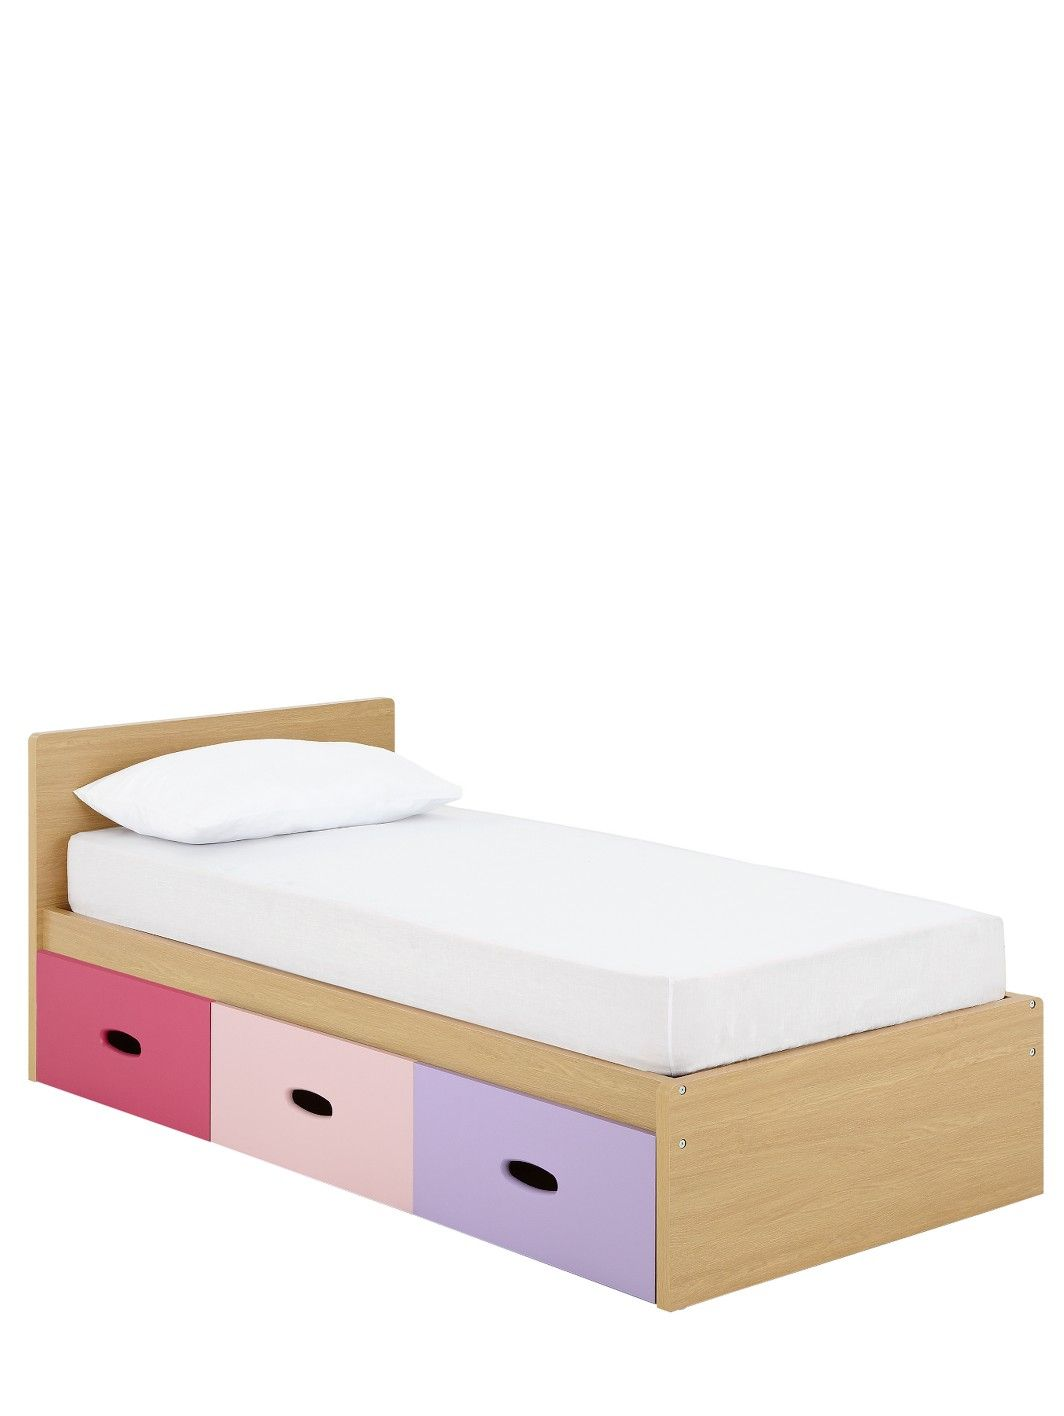 239 mattress included ladybird harley kids single storage bed with optional assembly service